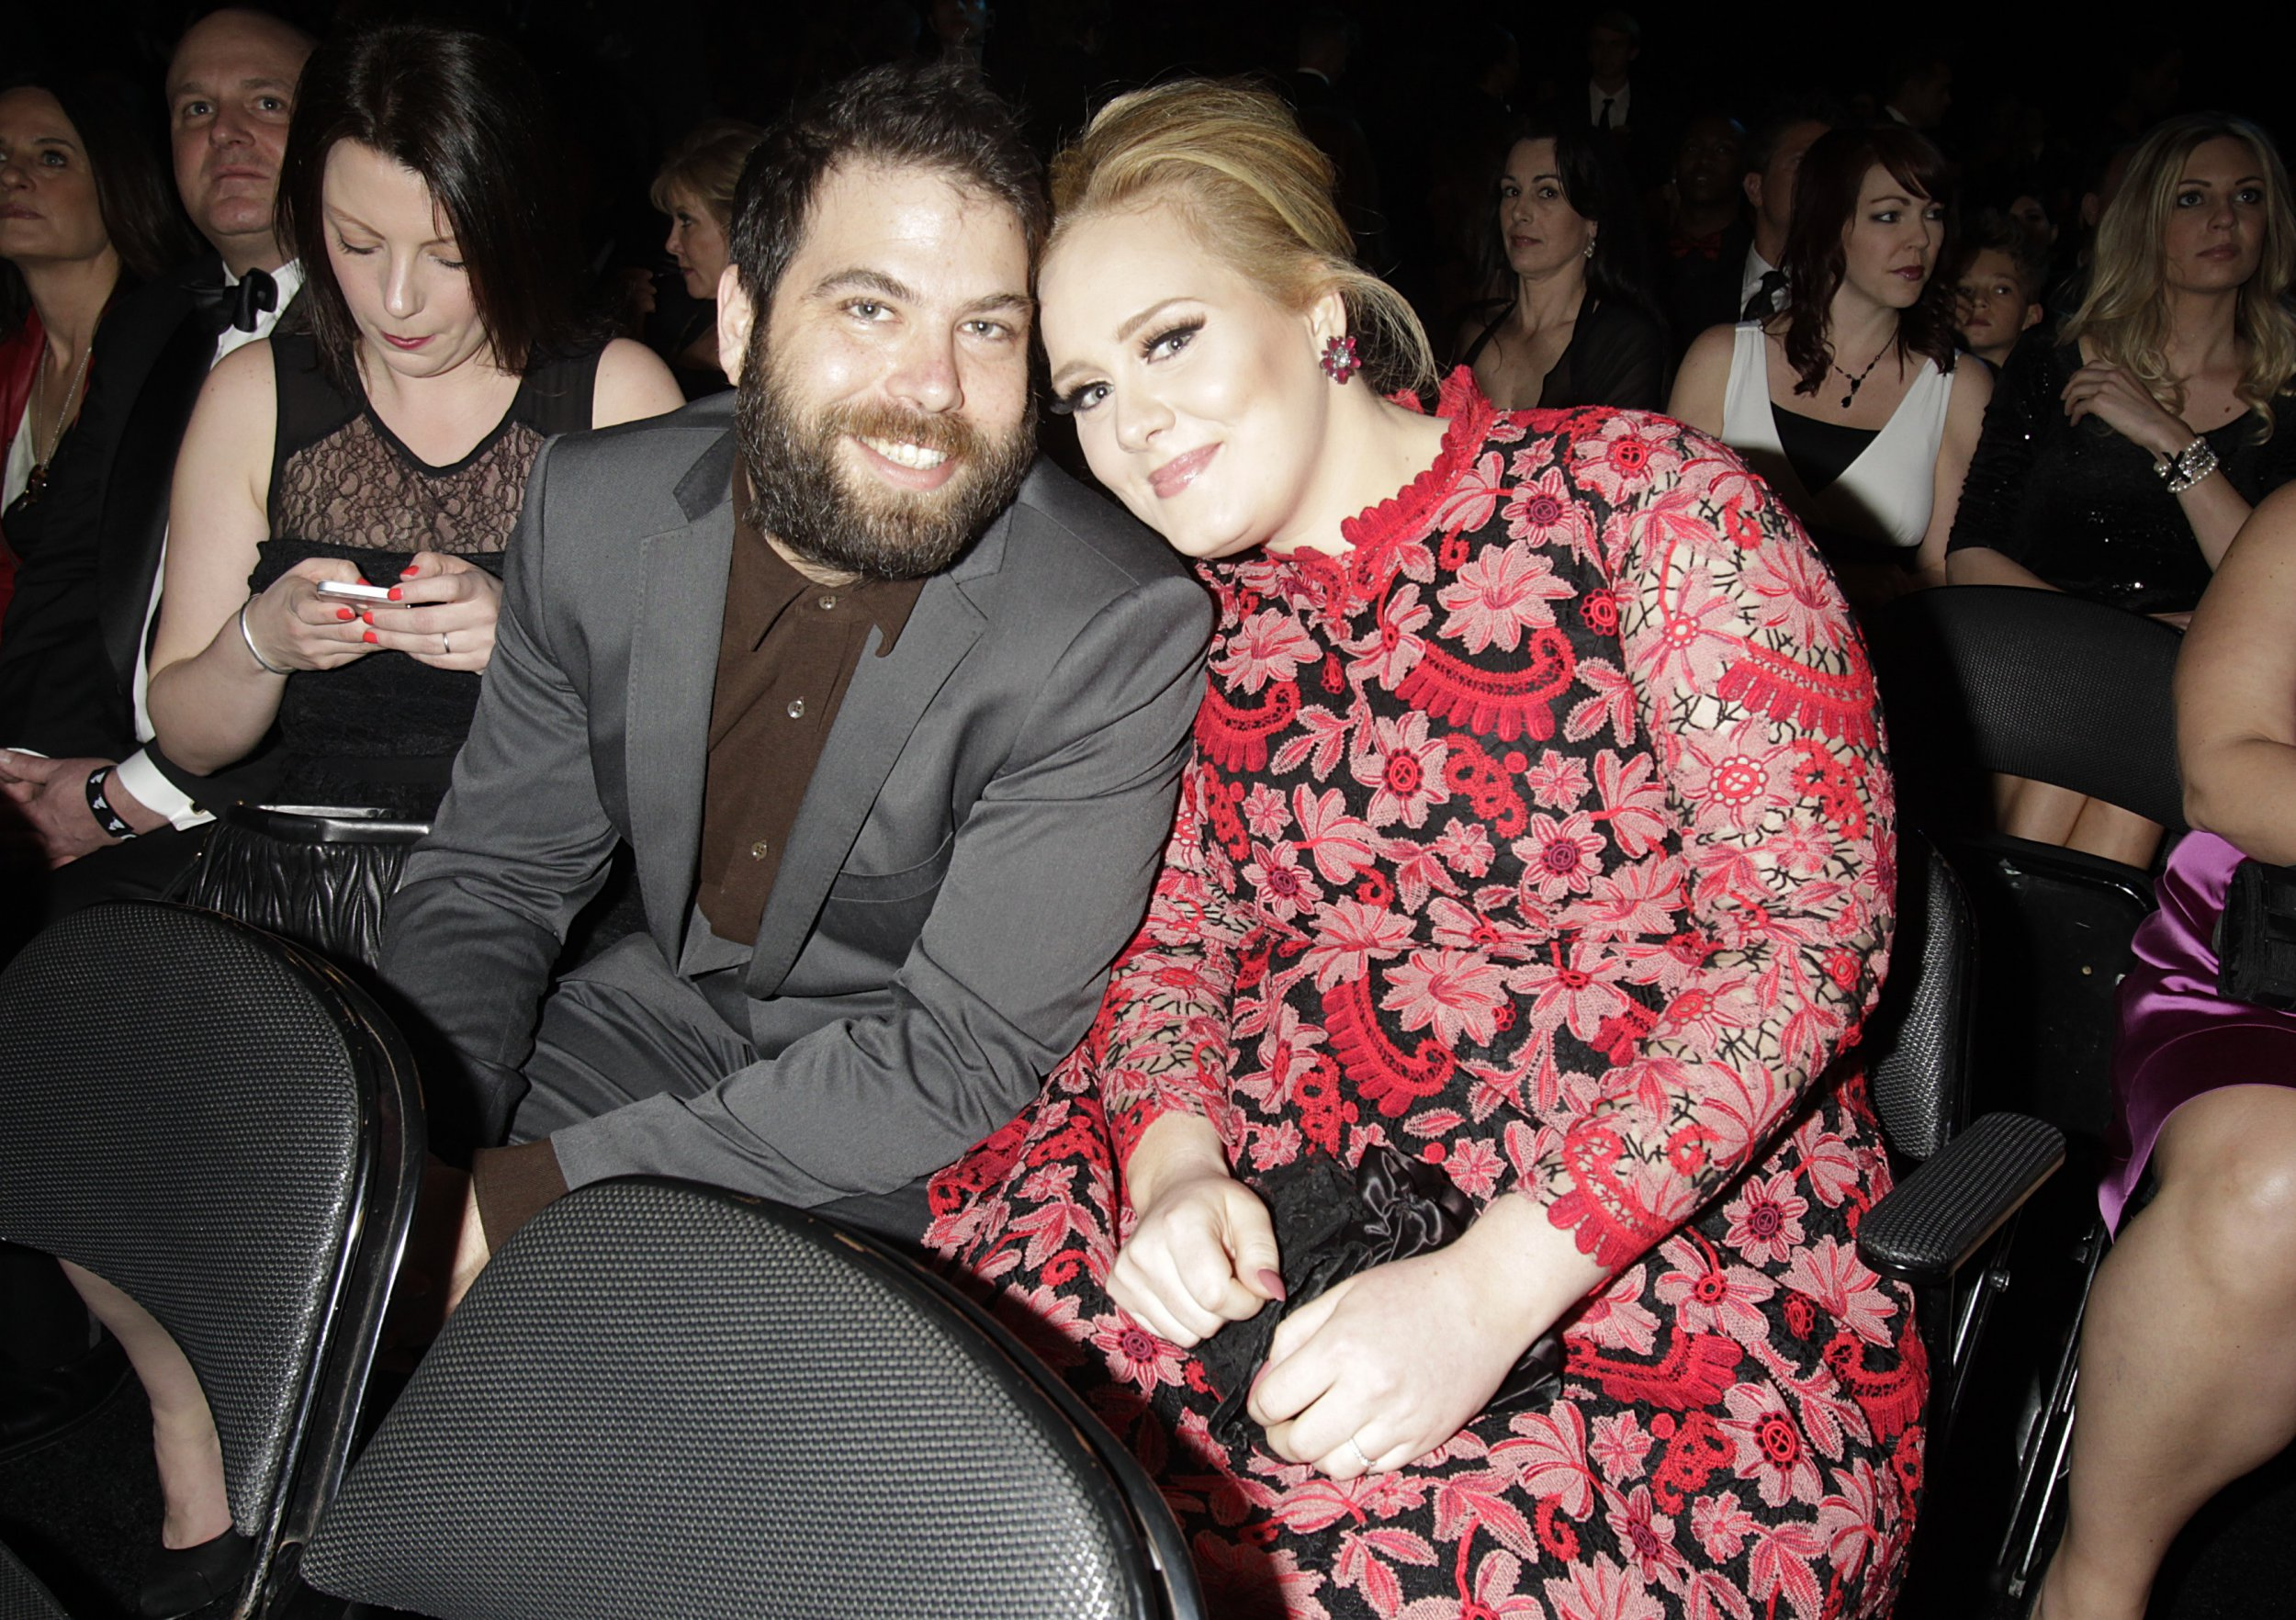 Adele and Simon Konecki are seen in a assembly during a 55th Annual Grammy Awards on Feb 10, 2013 in Los Angeles, California. CBS/Francis Specker /Landov